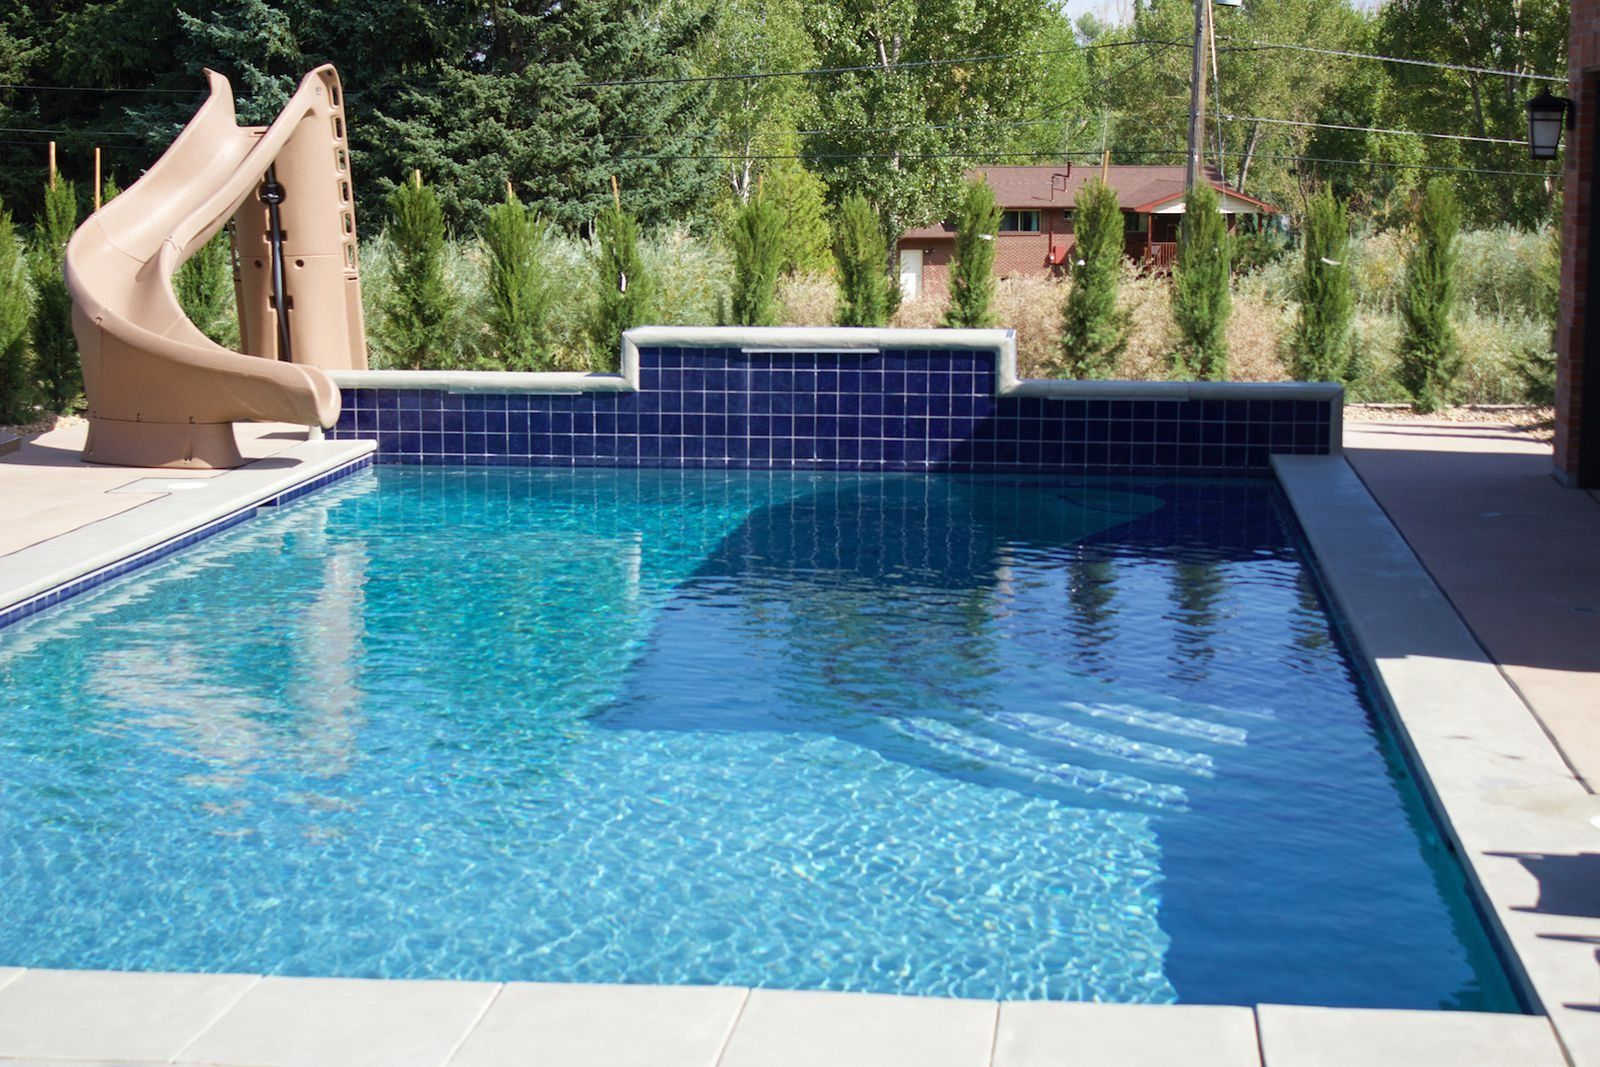 Outdoor pool with slide  Choosing The Right Outdoor Pool Slide   Pinterest   Pool slides and ...